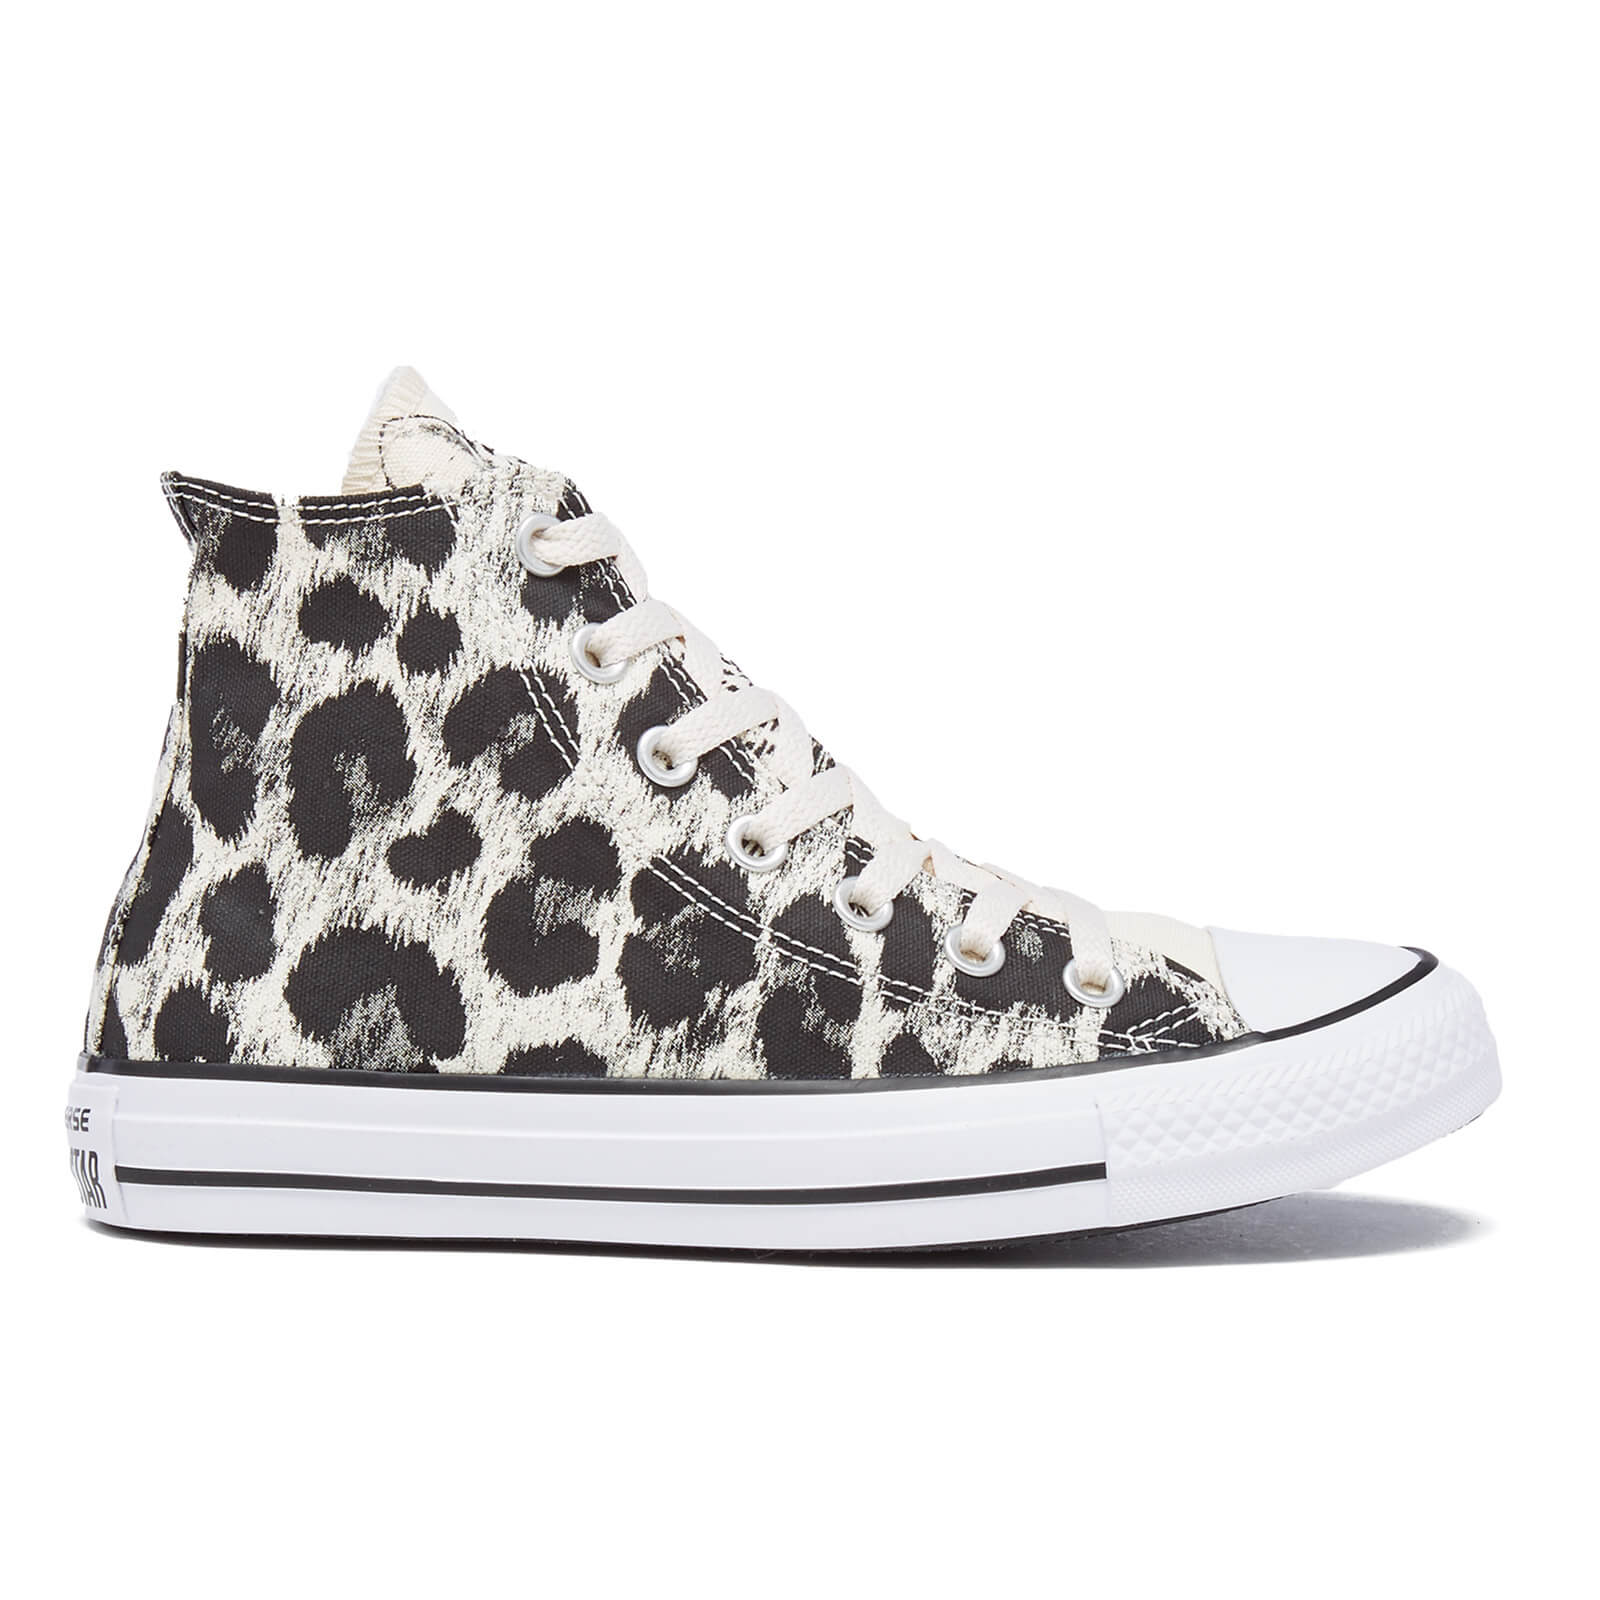 Converse Women s Chuck Taylor All Star Animal Print Hi-Top Trainers -  Parchment Black White - Free UK Delivery over £50 9f49f40de